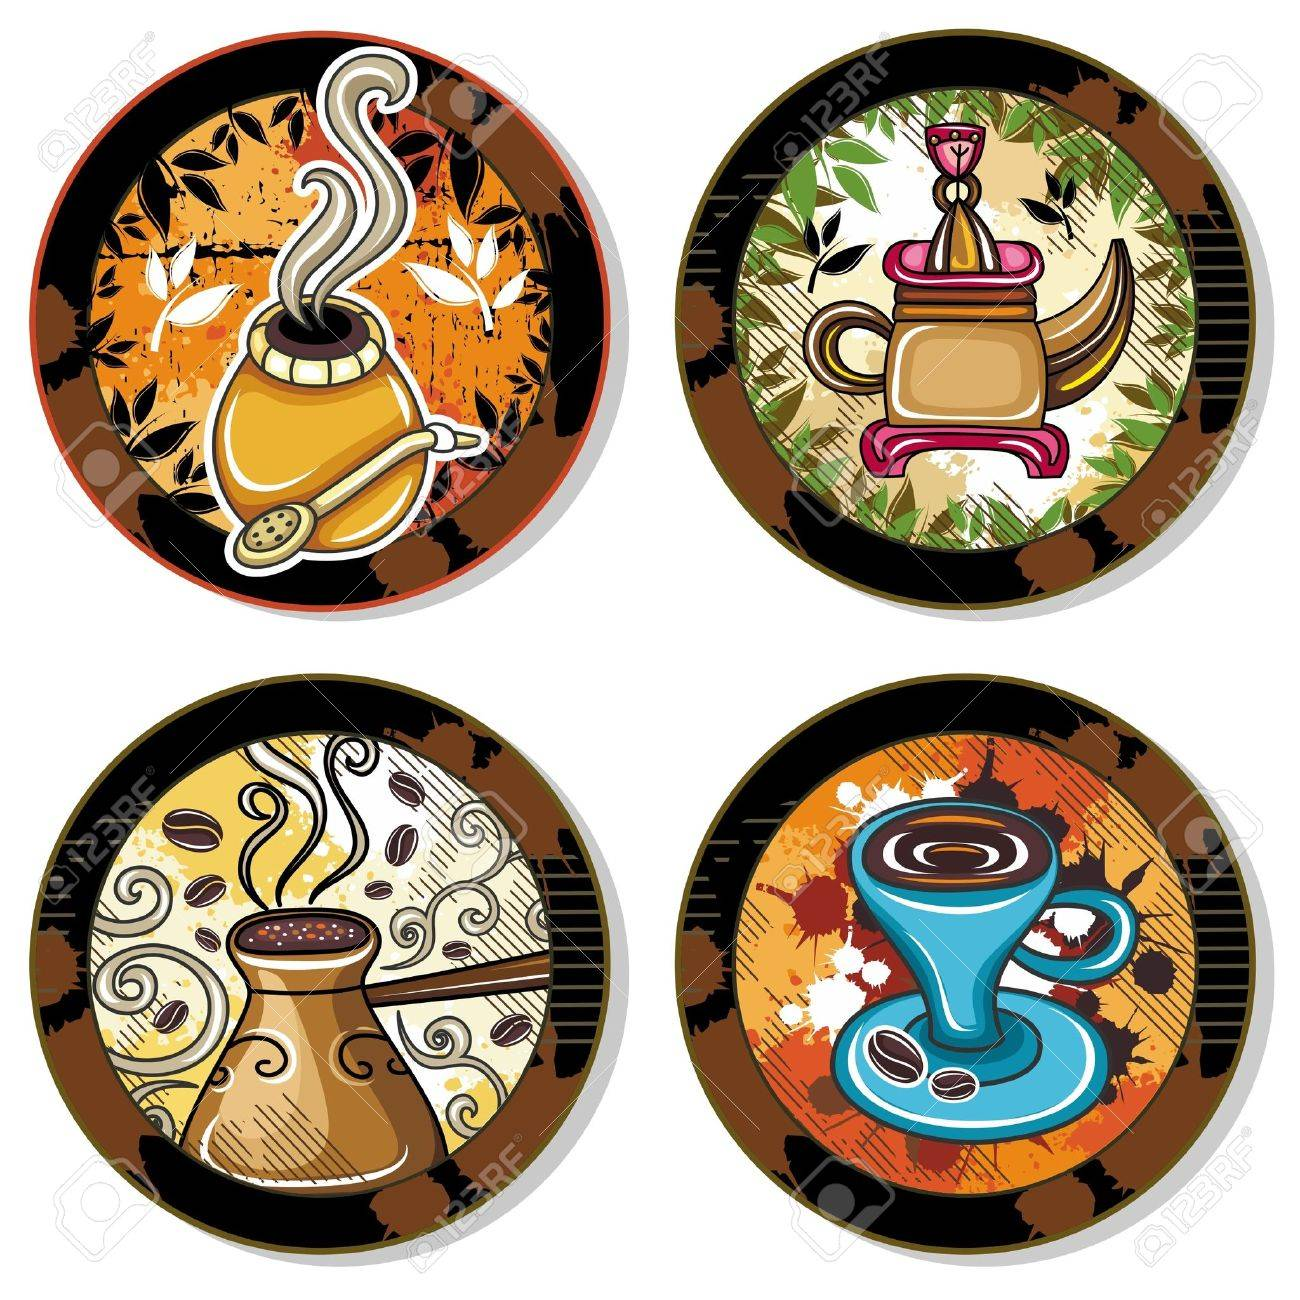 Grunge collection of drink coasters - coffee, tea, yerba mate theme, isolated on white background 4 Stock Vector - 12249719